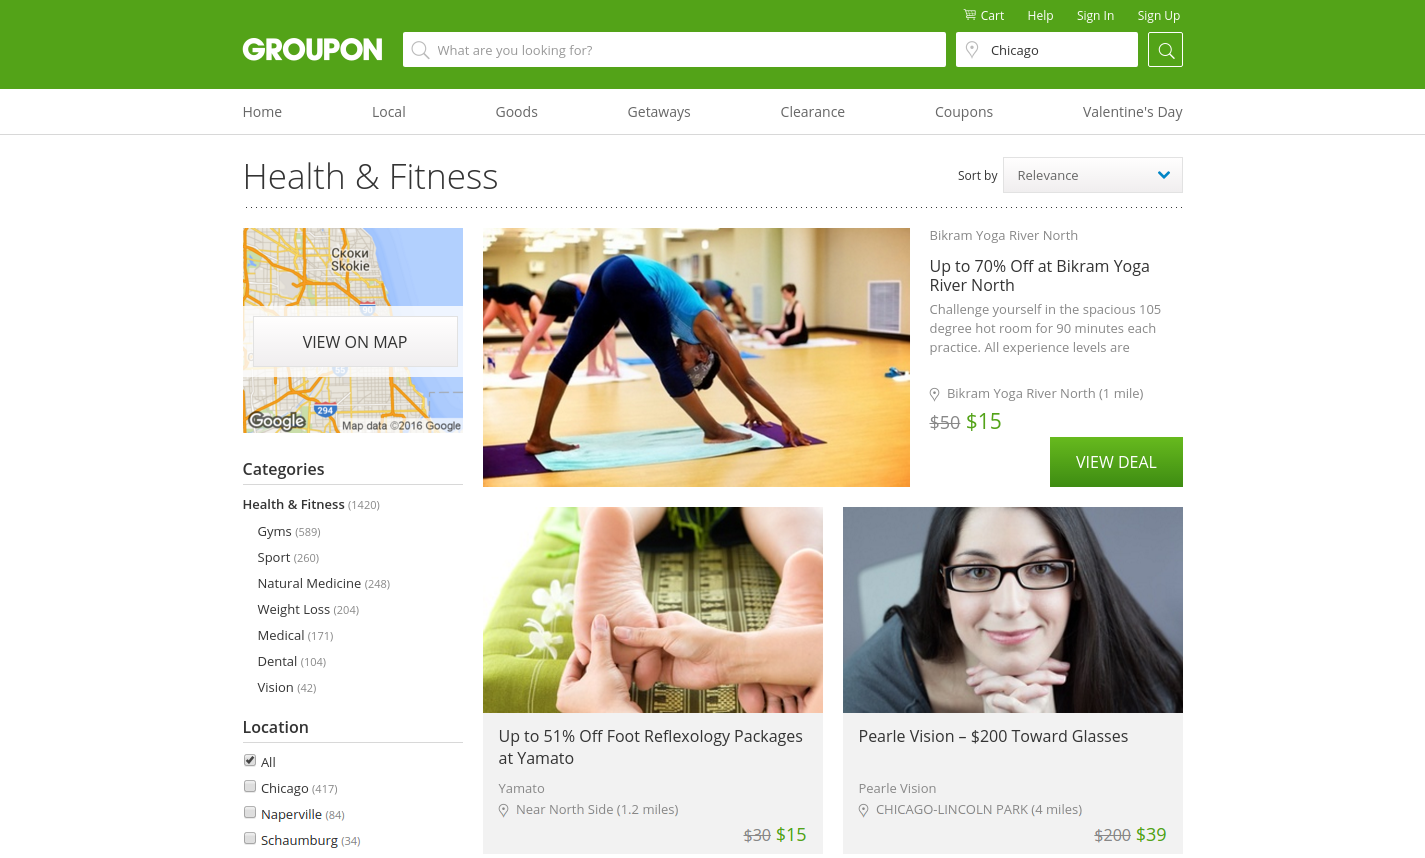 Groupon today